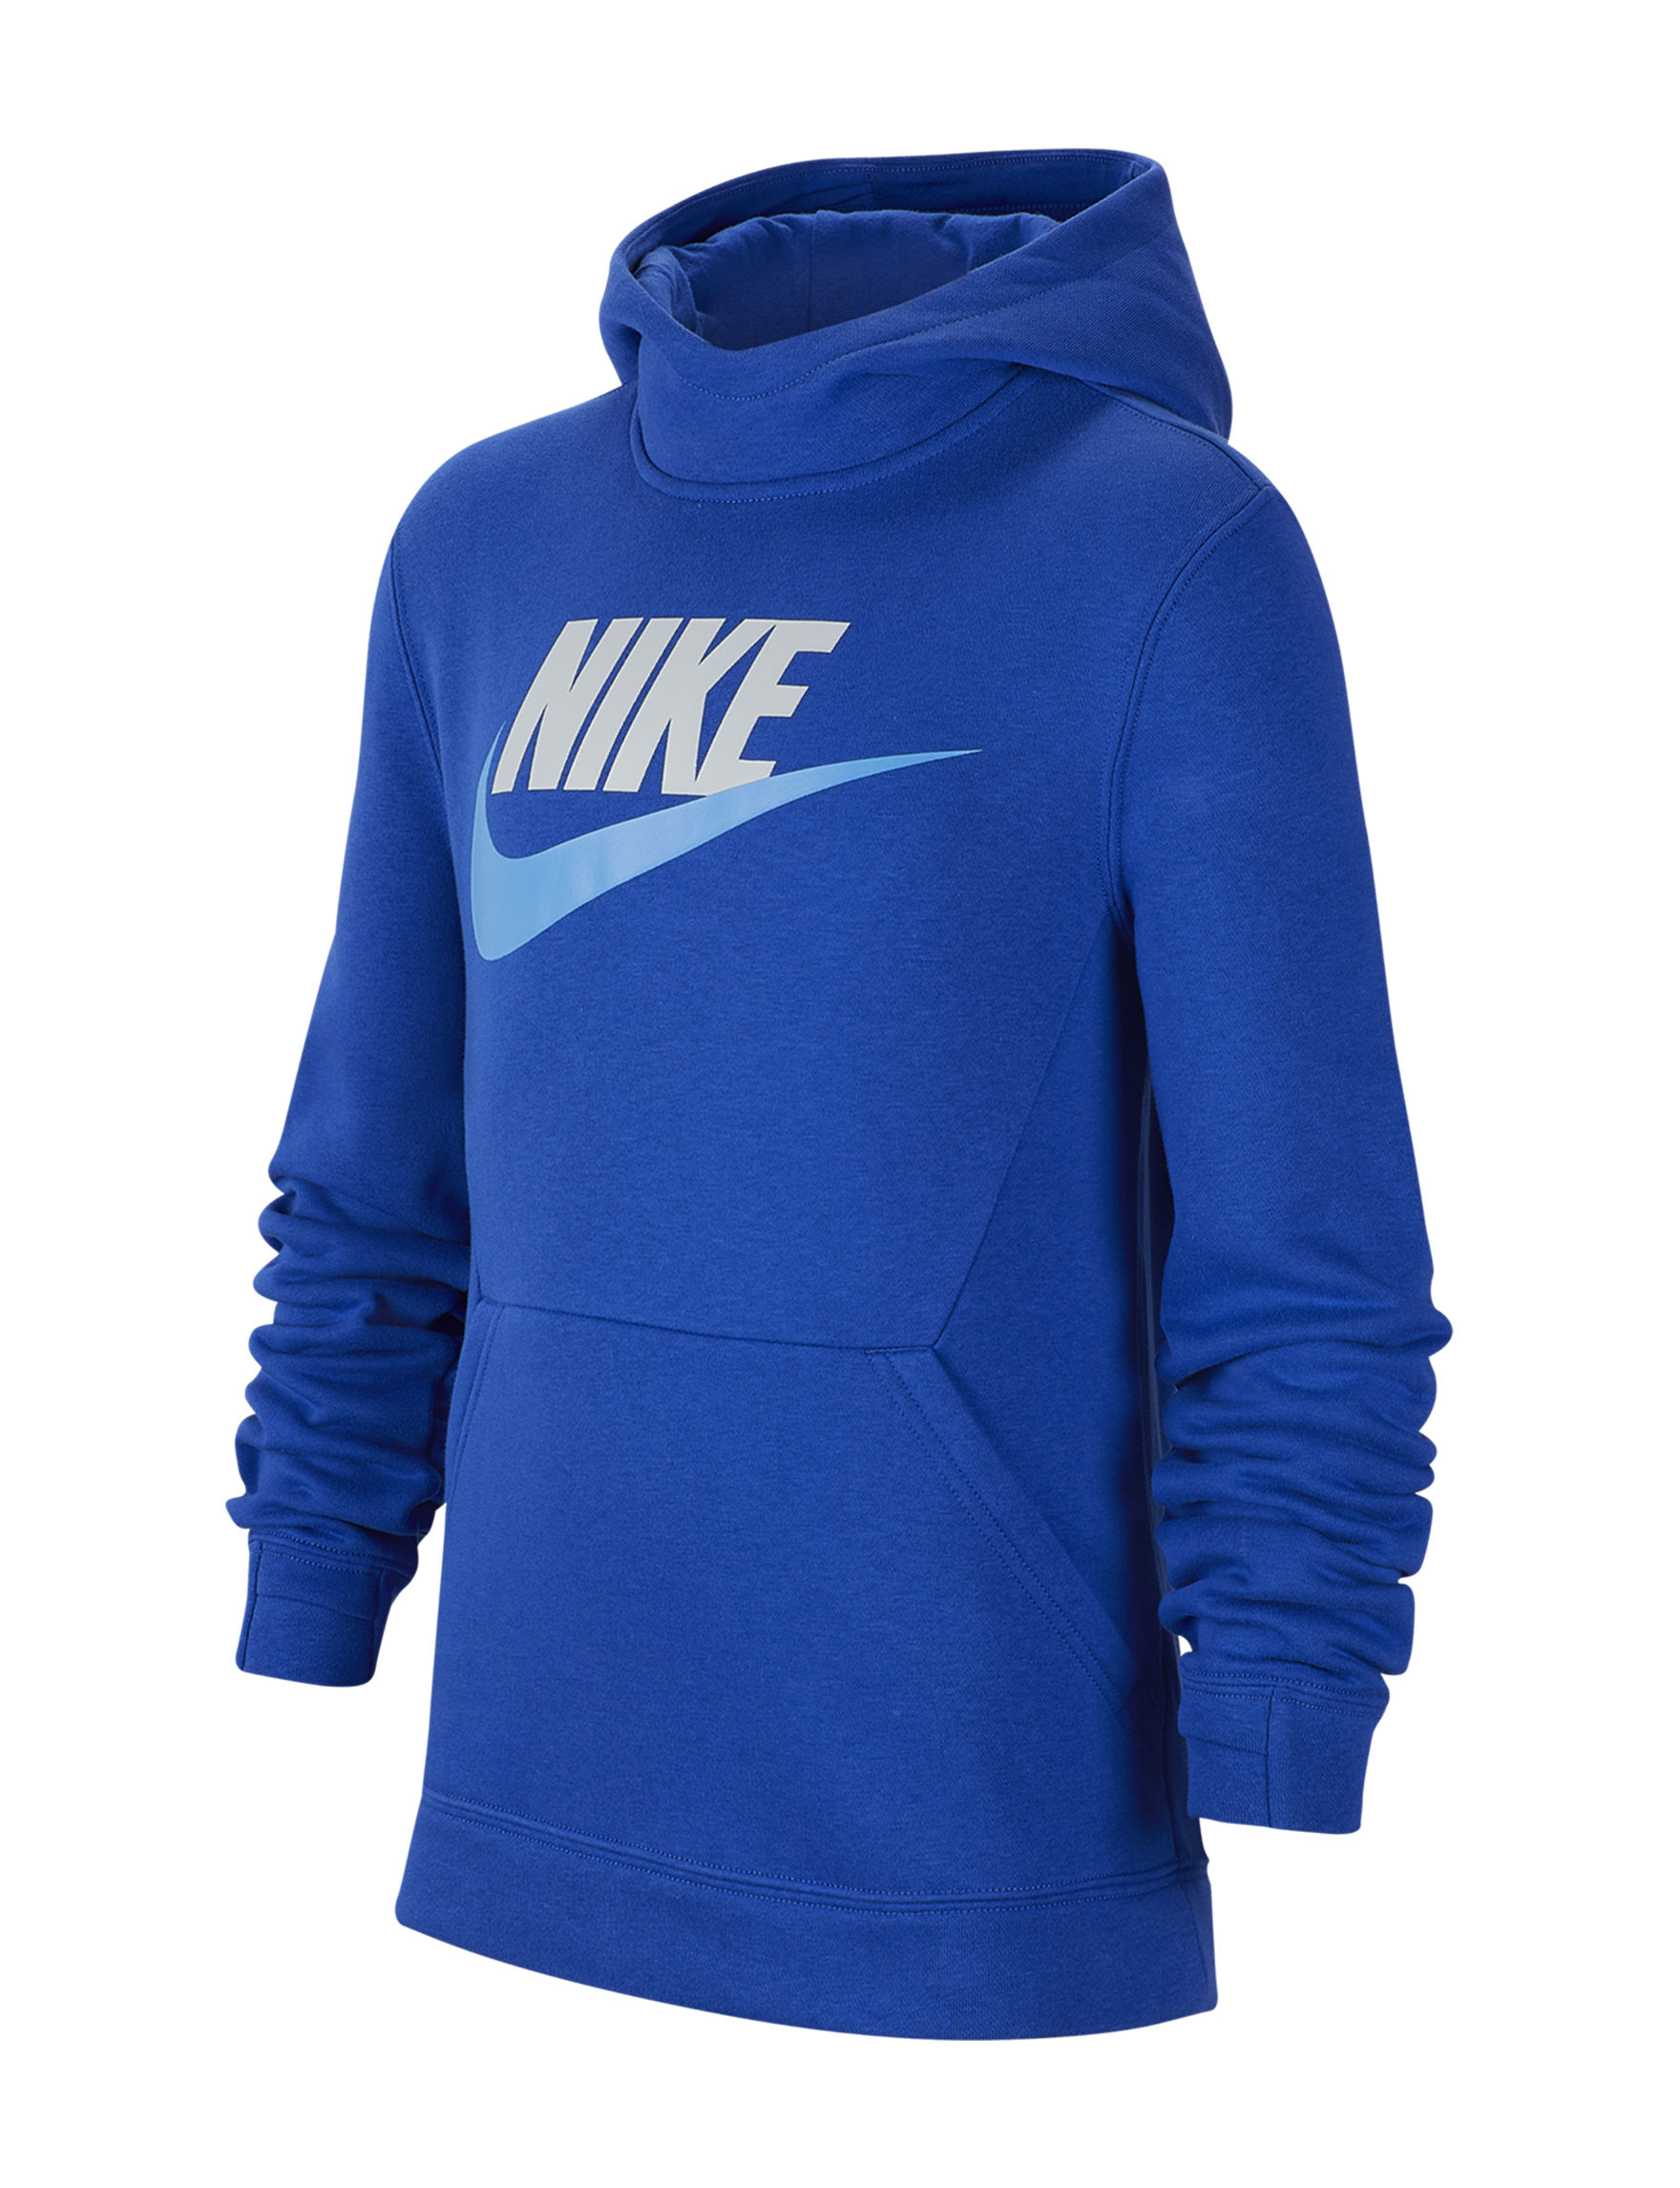 Nike Royal Blue